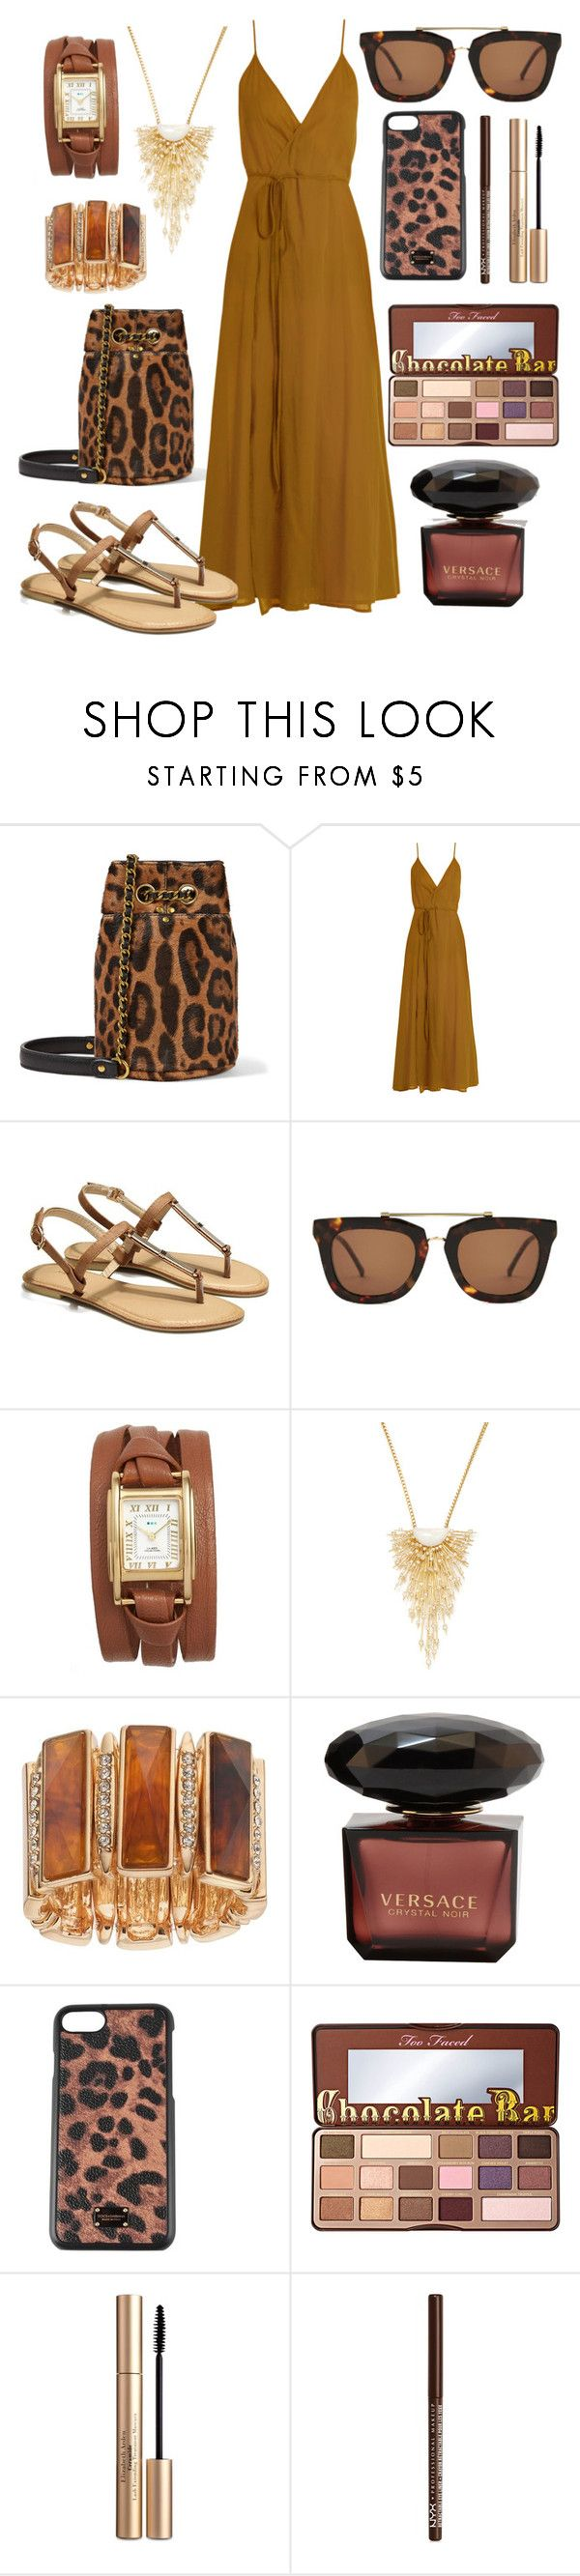 """""""Browns"""" by girlygorgeousness ❤ liked on Polyvore featuring Jérôme Dreyfuss, Loup Charmant, Kaibosh, La Mer, Maiyet, Jennifer Lopez, Dolce&Gabbana, Too Faced Cosmetics, Elizabeth Arden and NYX"""